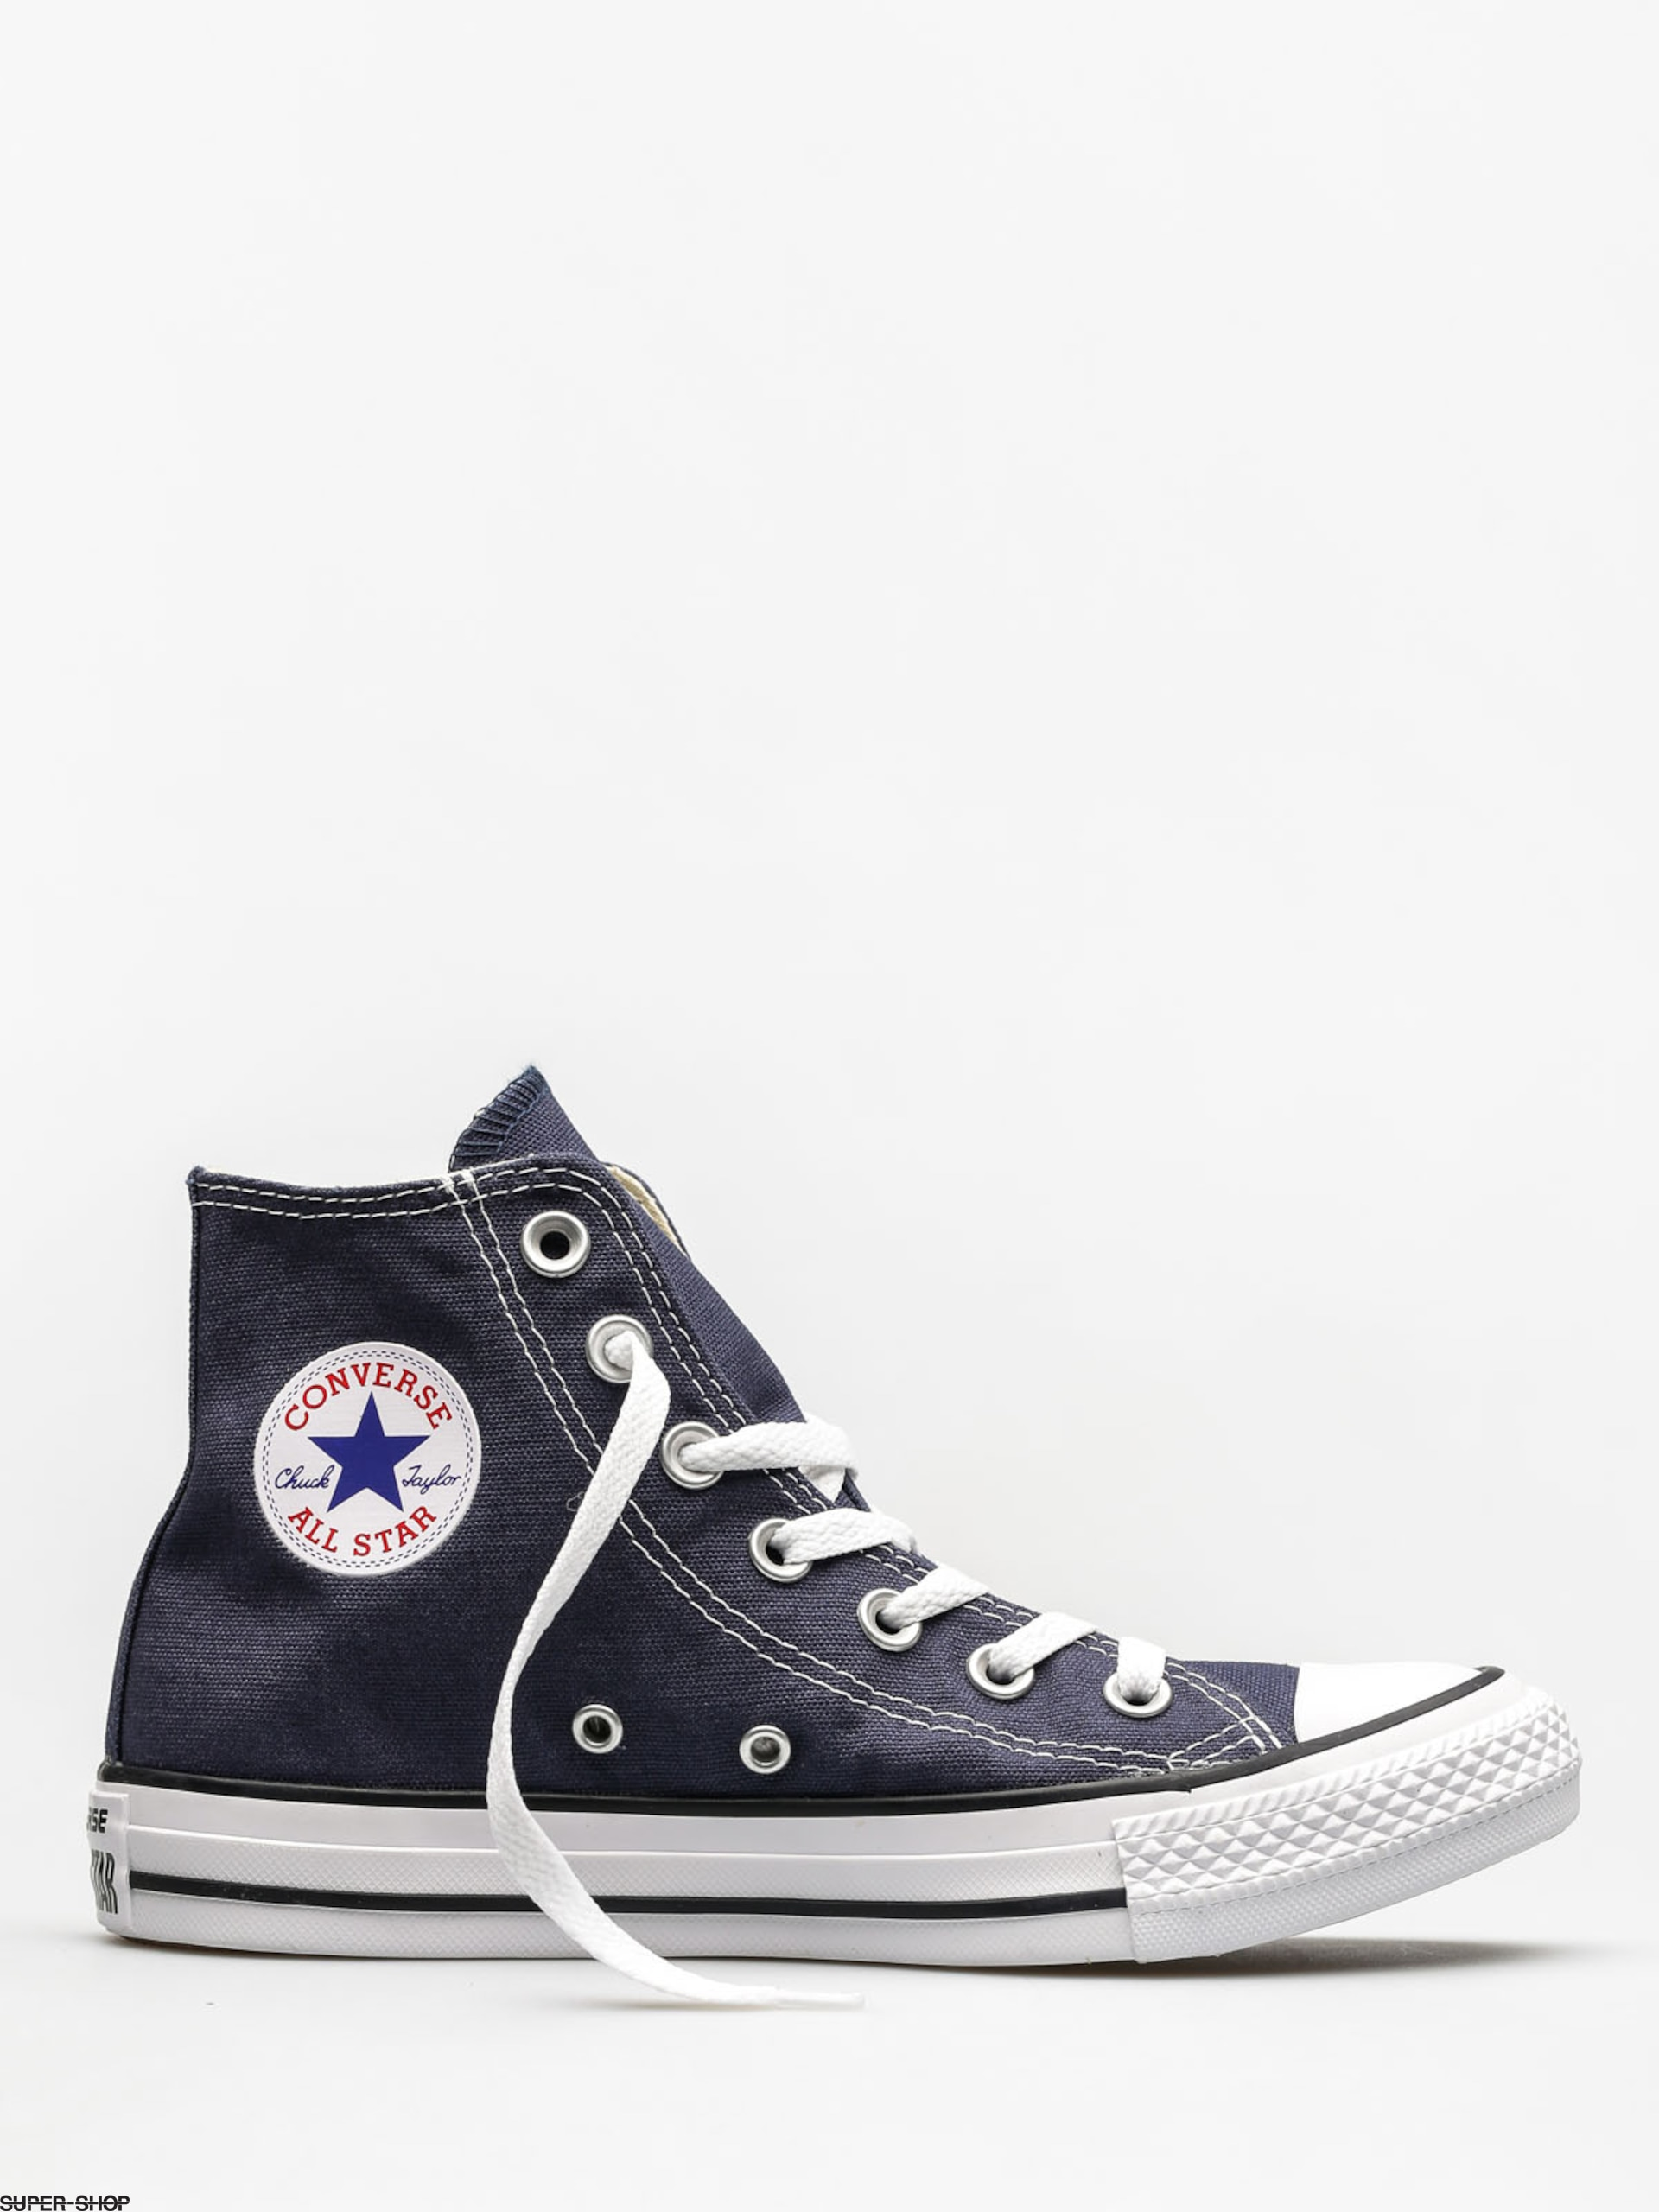 75855405a501 871226-w1920-converse-chucks-chuck-taylor-all-star-hi-navy.jpg